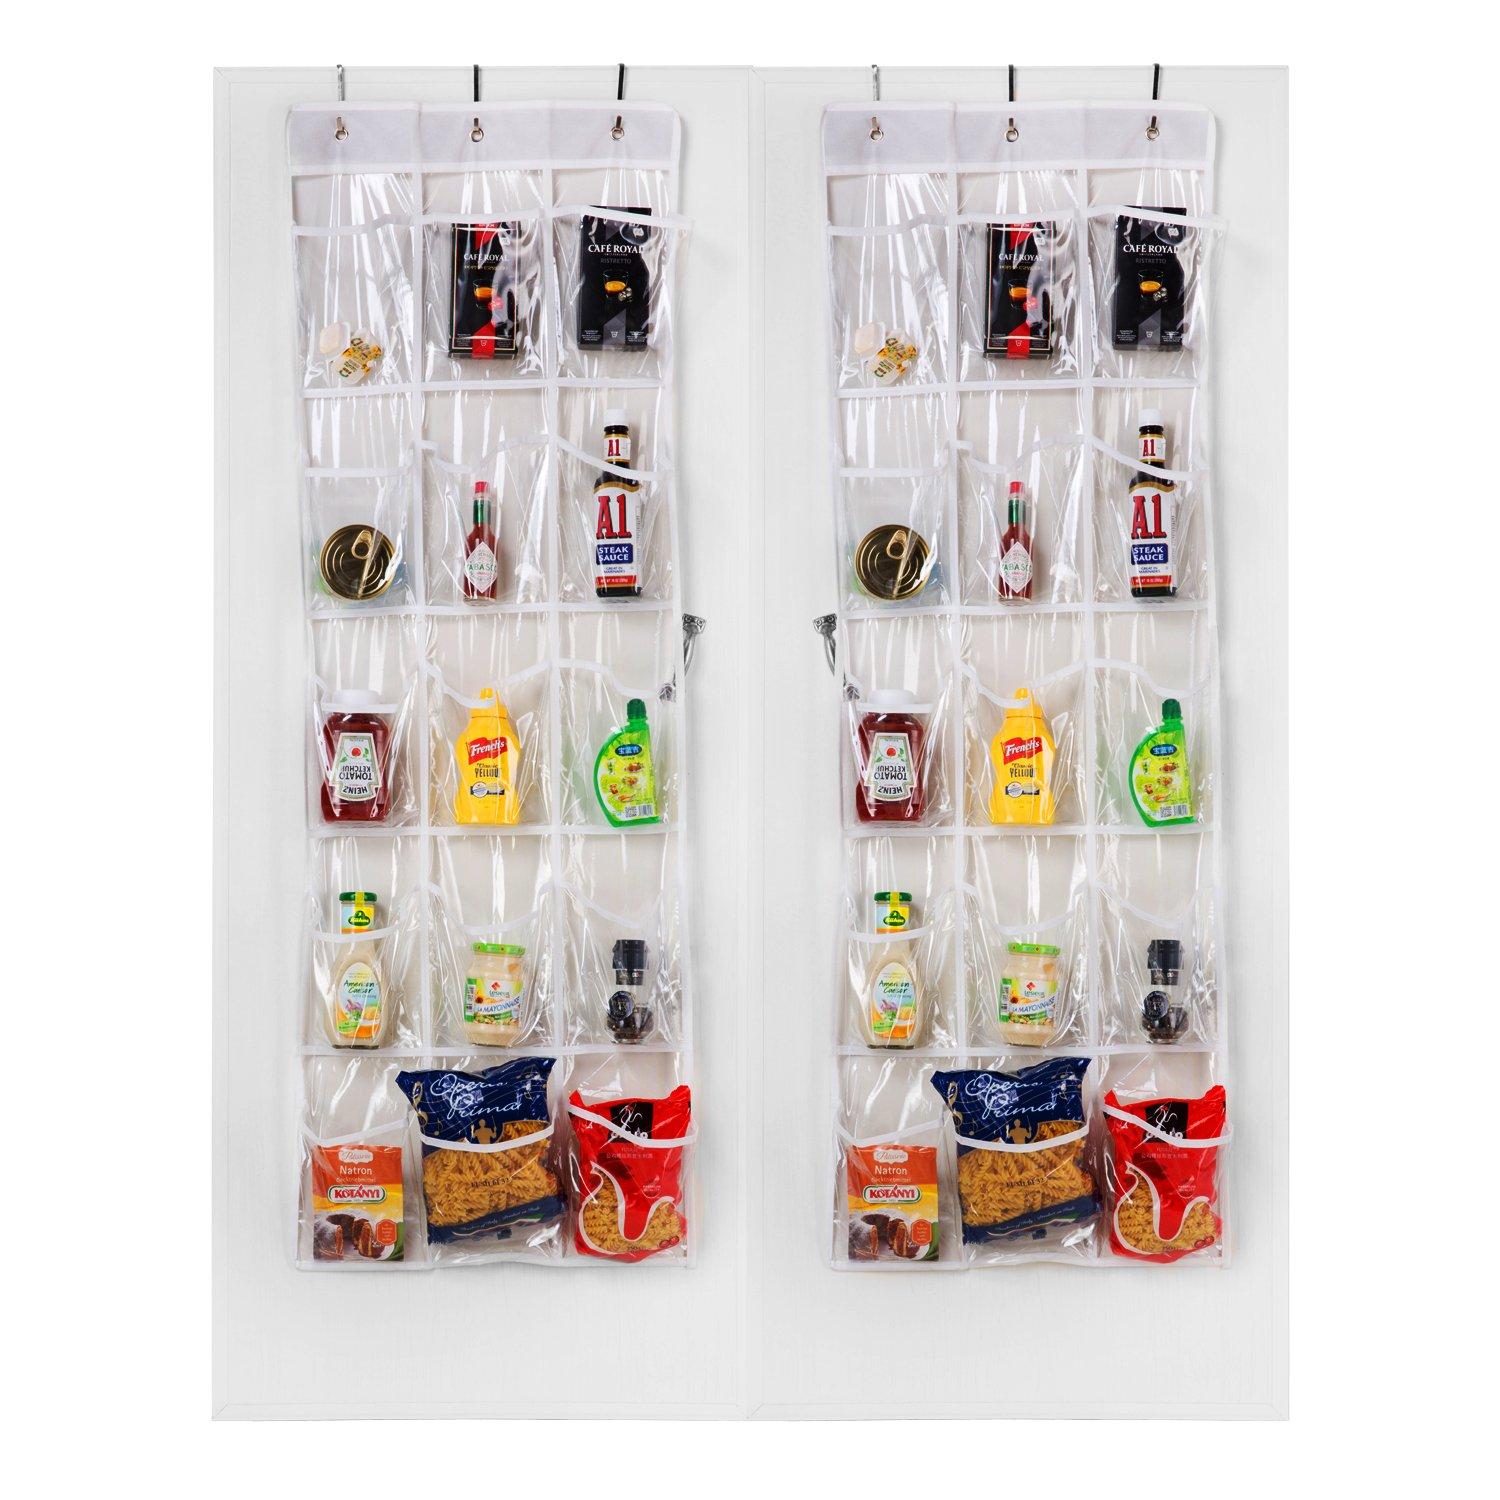 Meldarin Crystal Clear Over The Door Hanging Pantry Organizer 15 Pockets (52